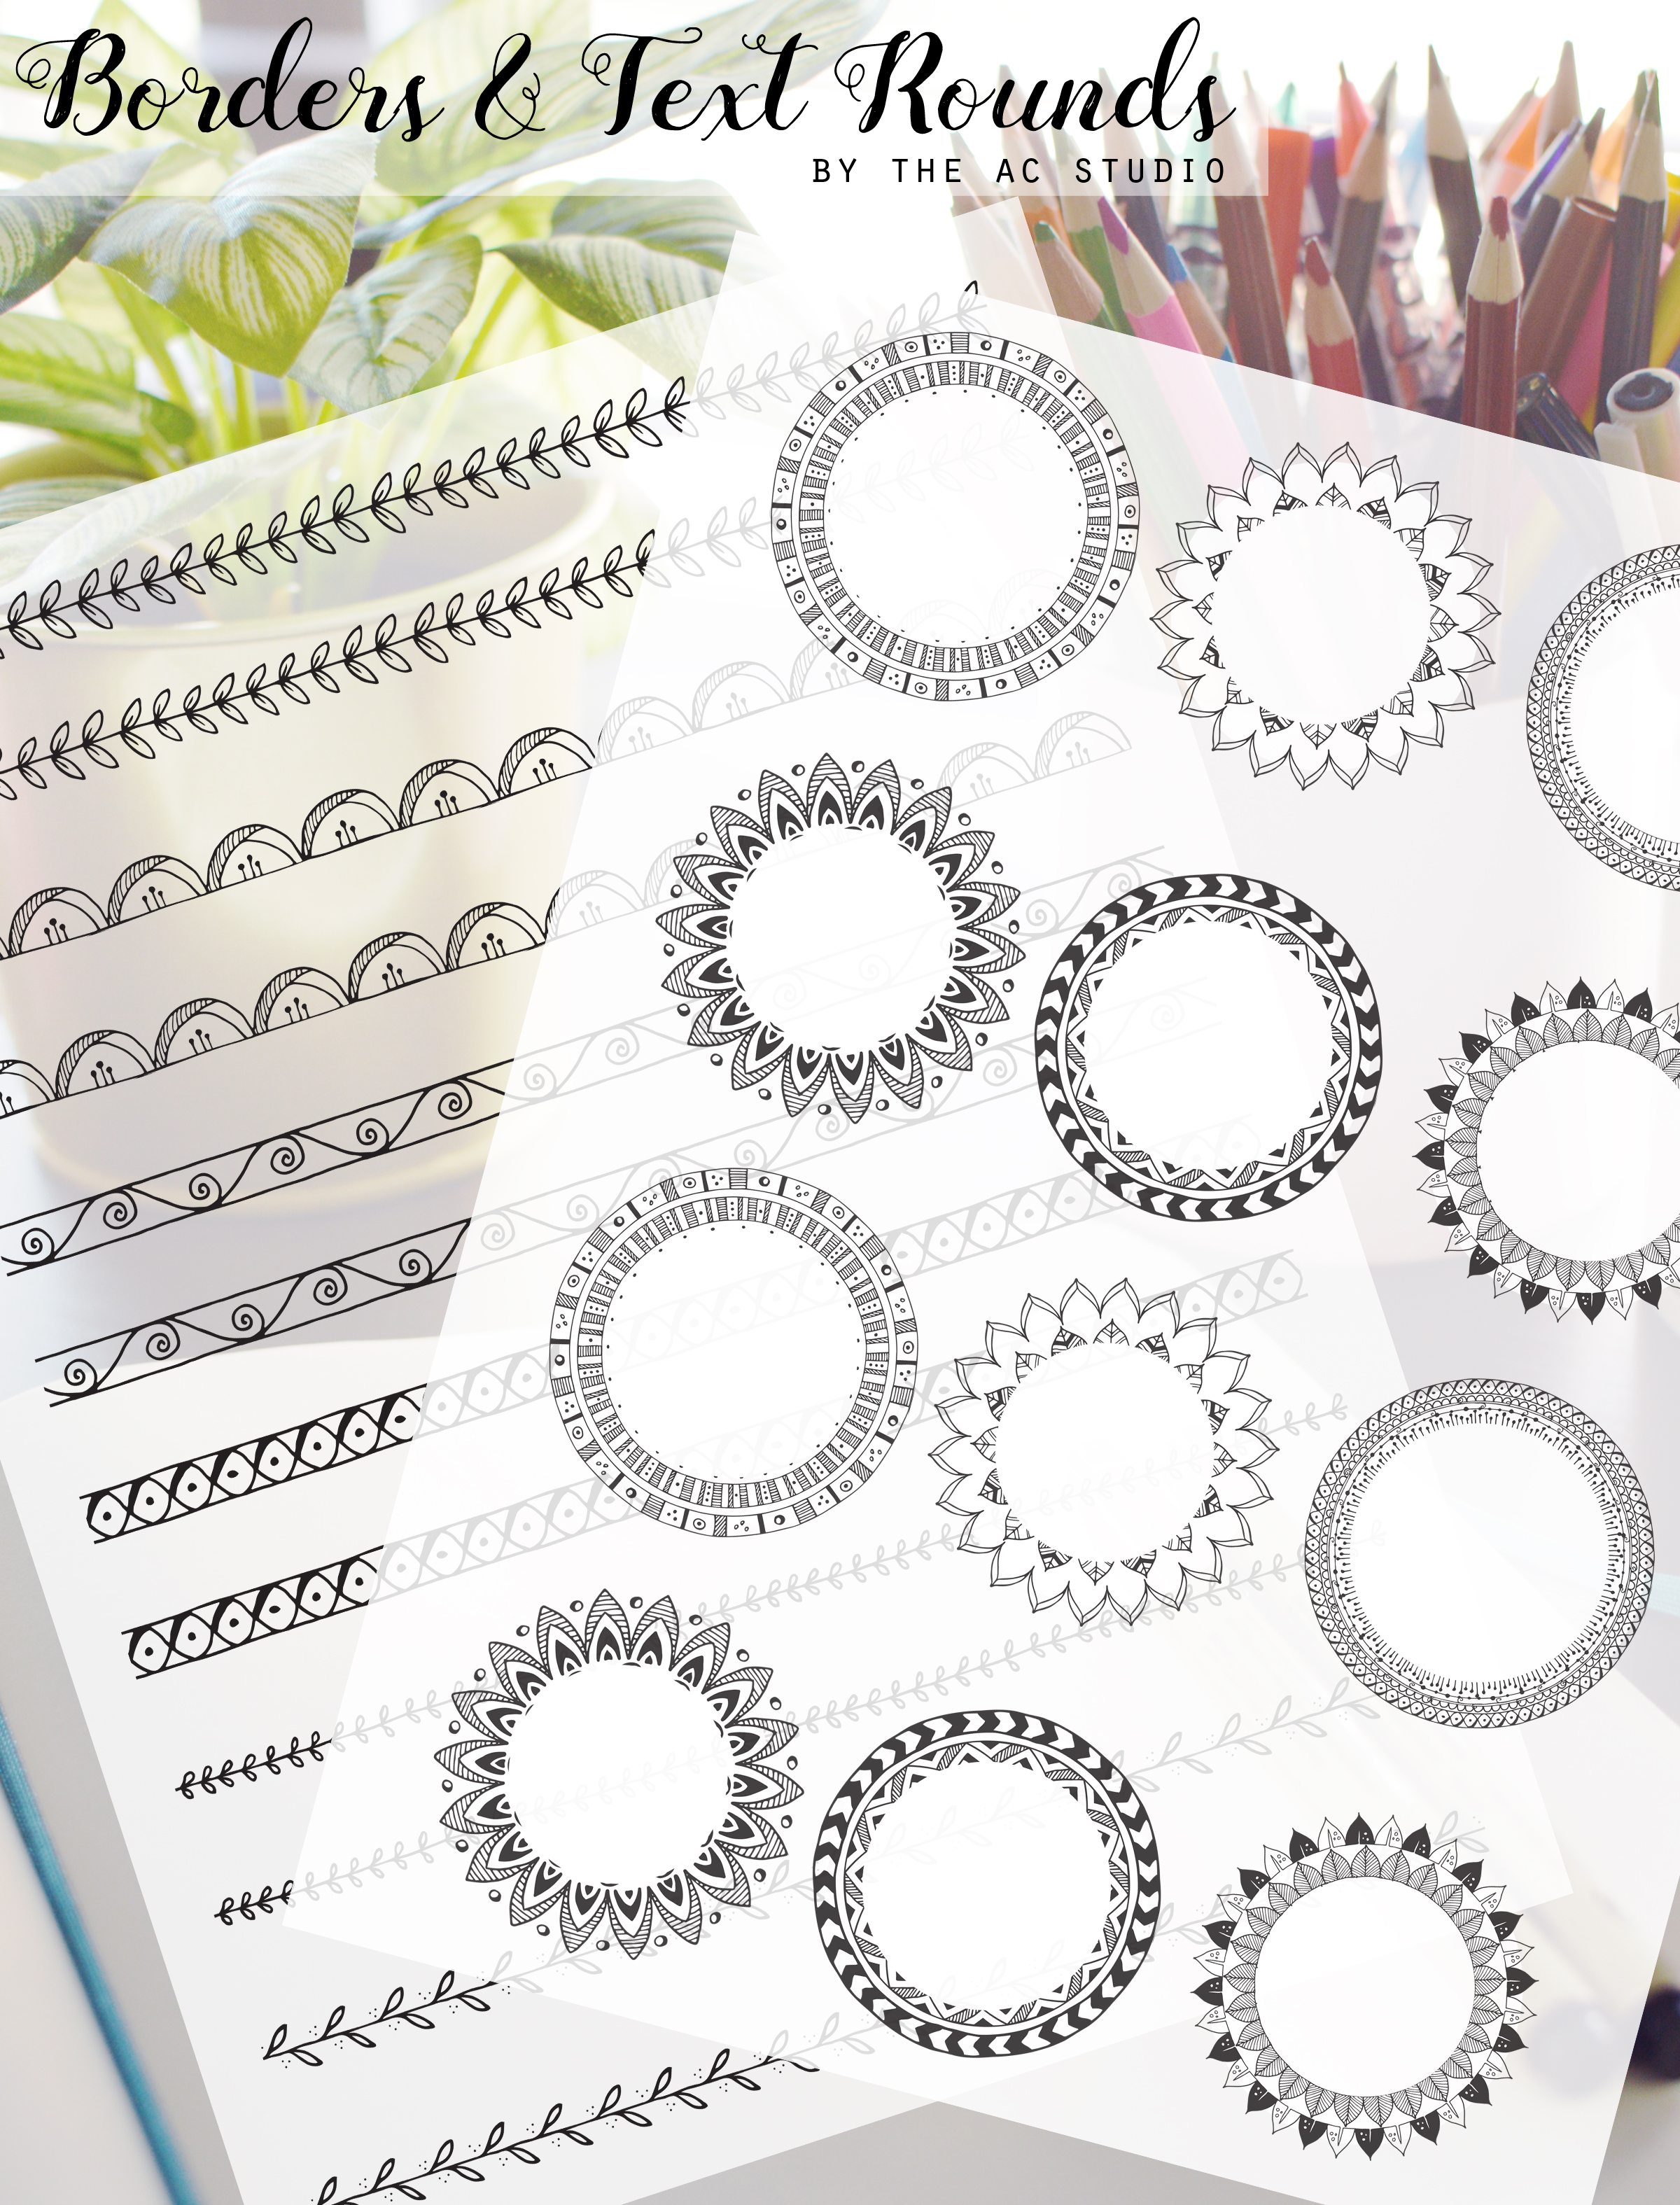 BORDERS AND TEXT ROUND PLANNER STICKERS DISPLAY.jpg